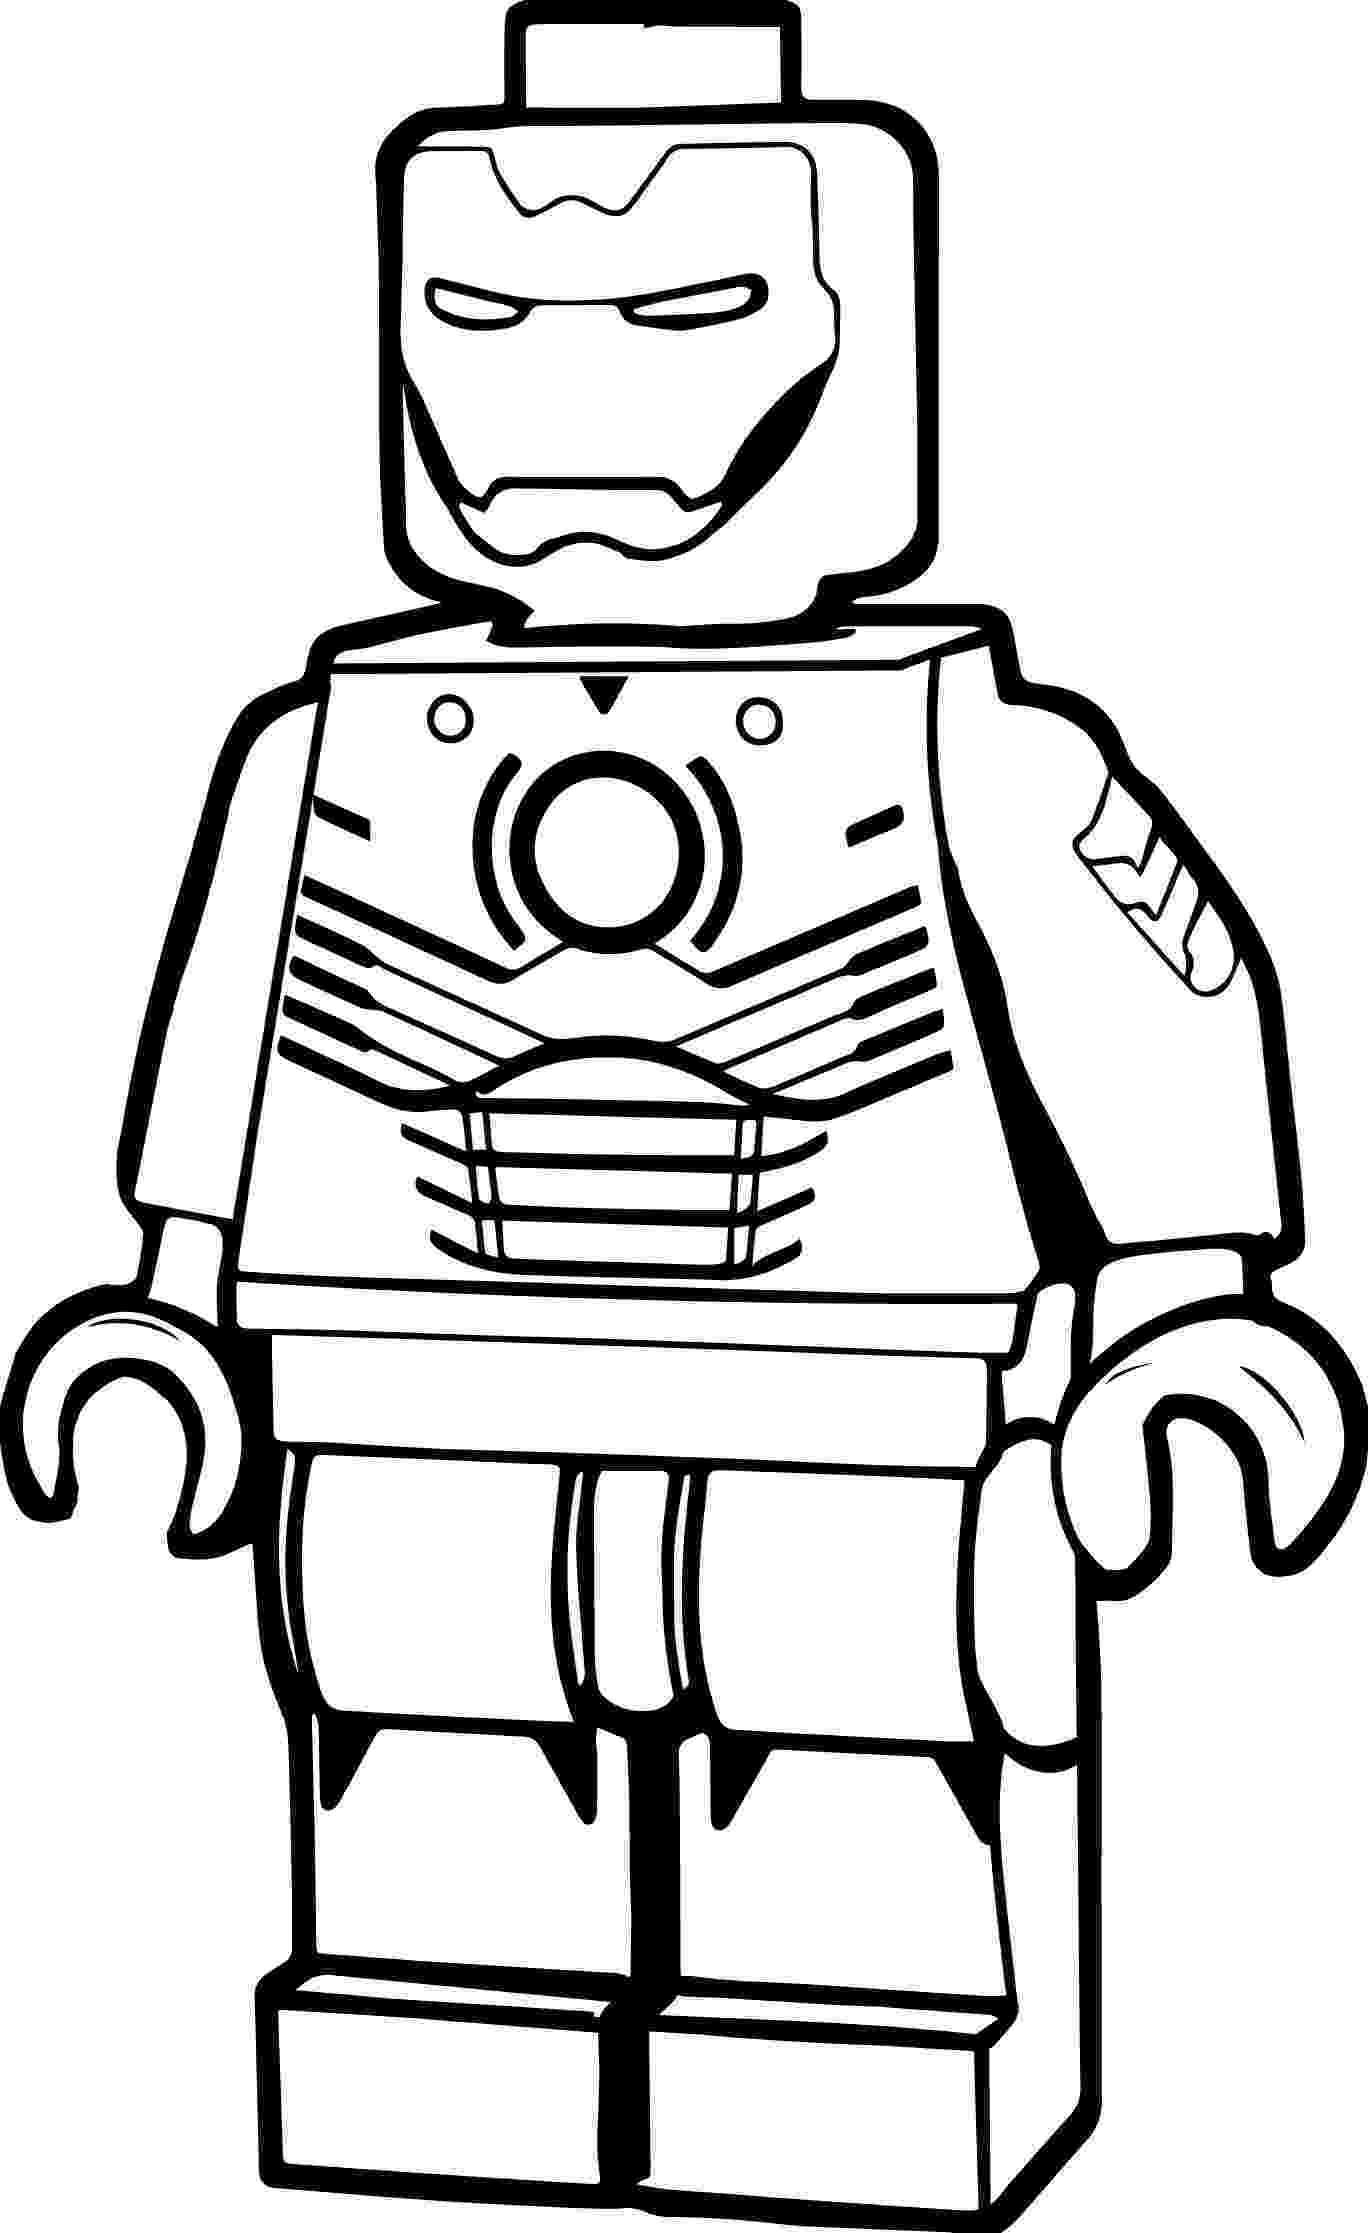 coloring pages of legos lego coloring pages free download best lego coloring of coloring legos pages